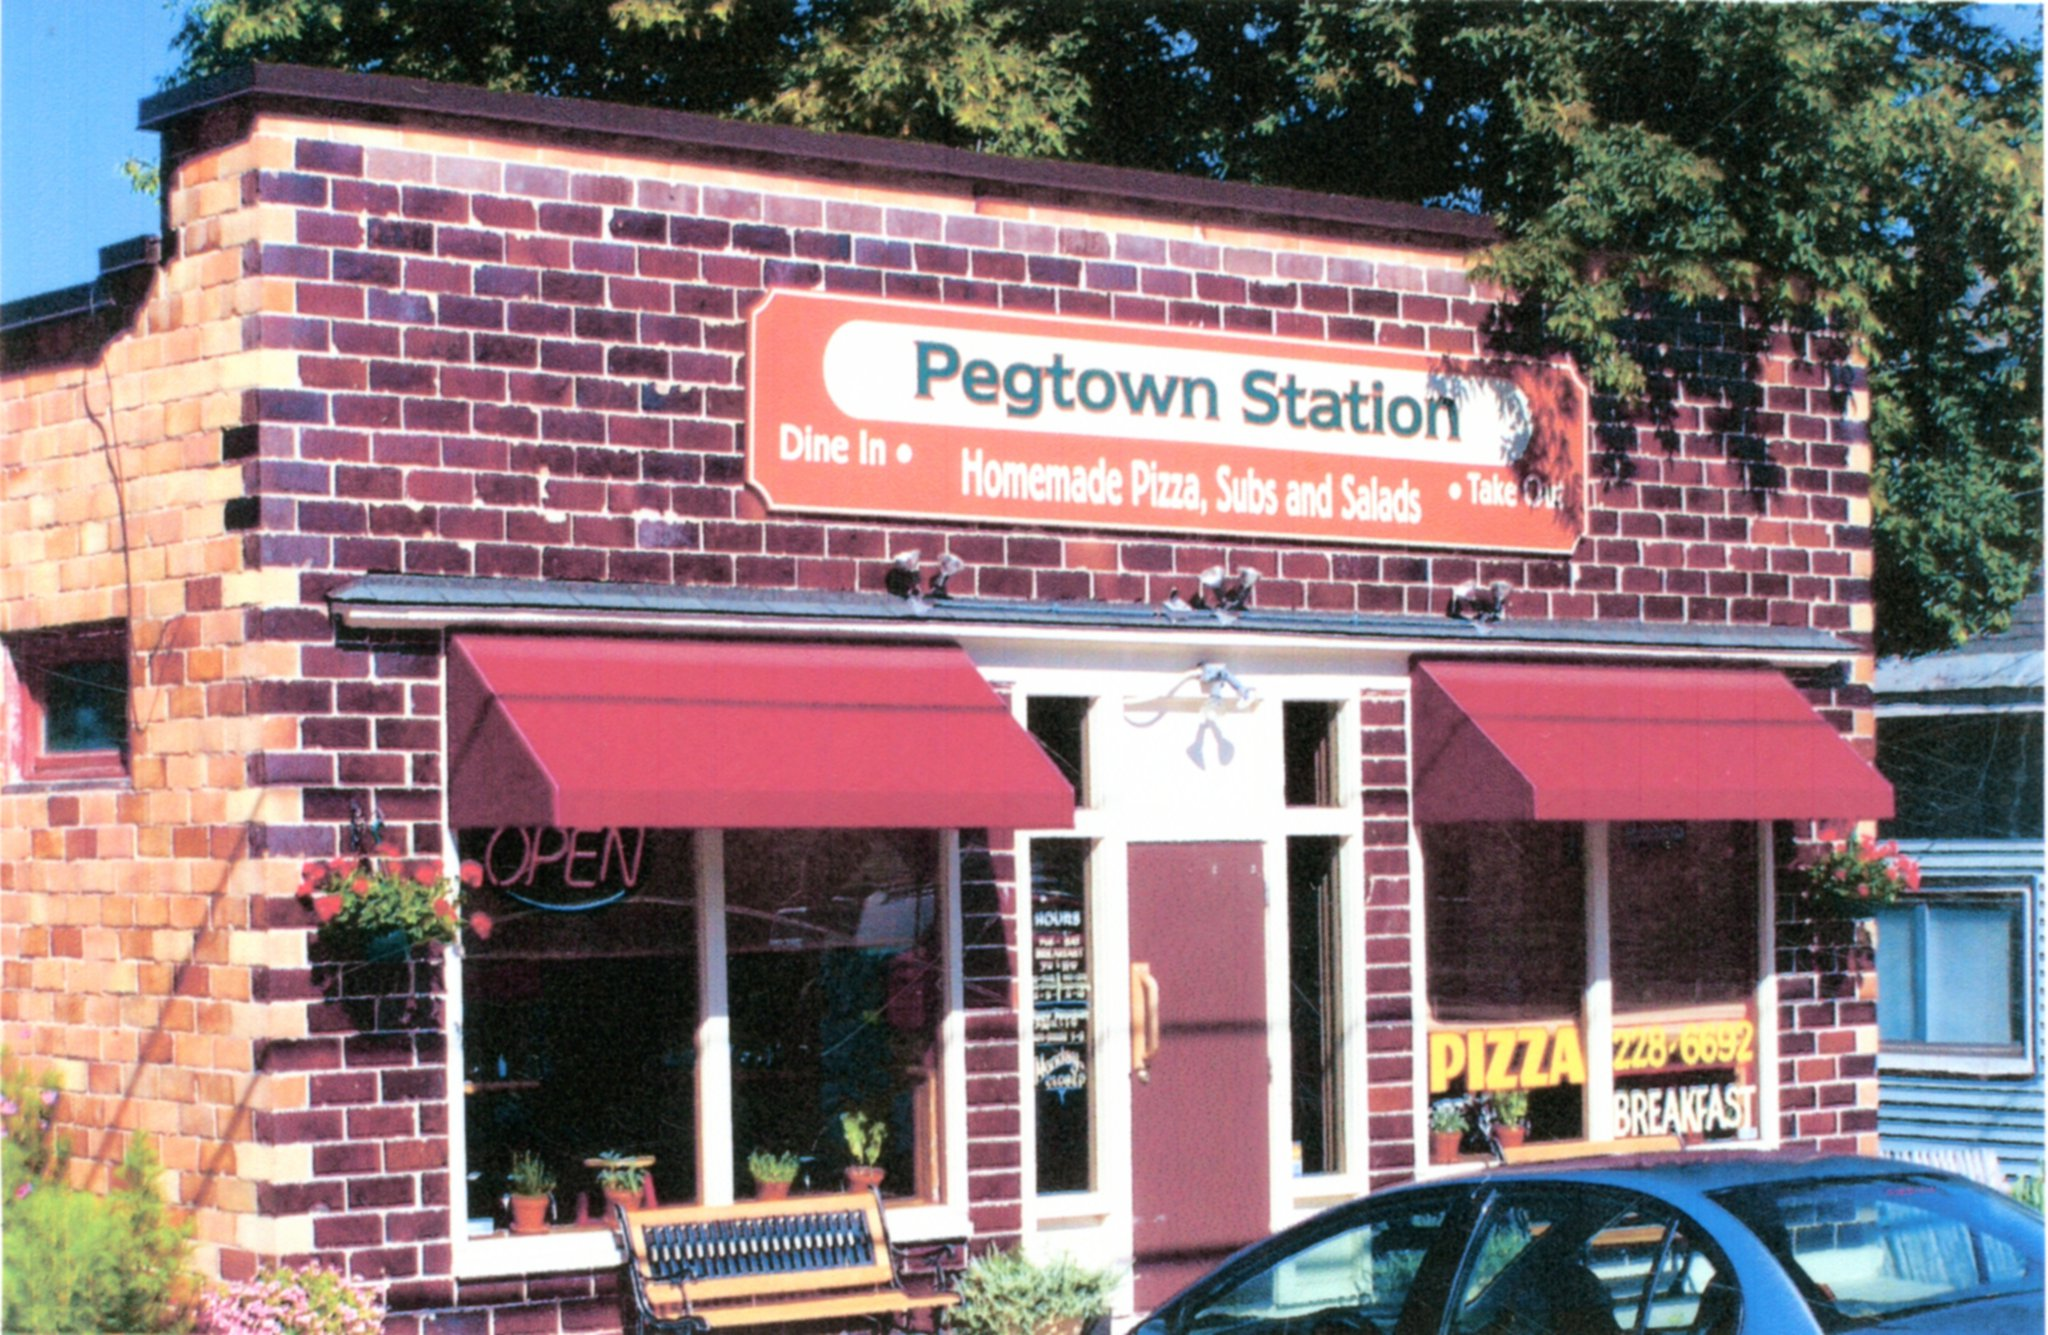 Pegtown Station - Homemade pizza, subs, salads, and voted best breakfast in 2012. 1-231-228-6692